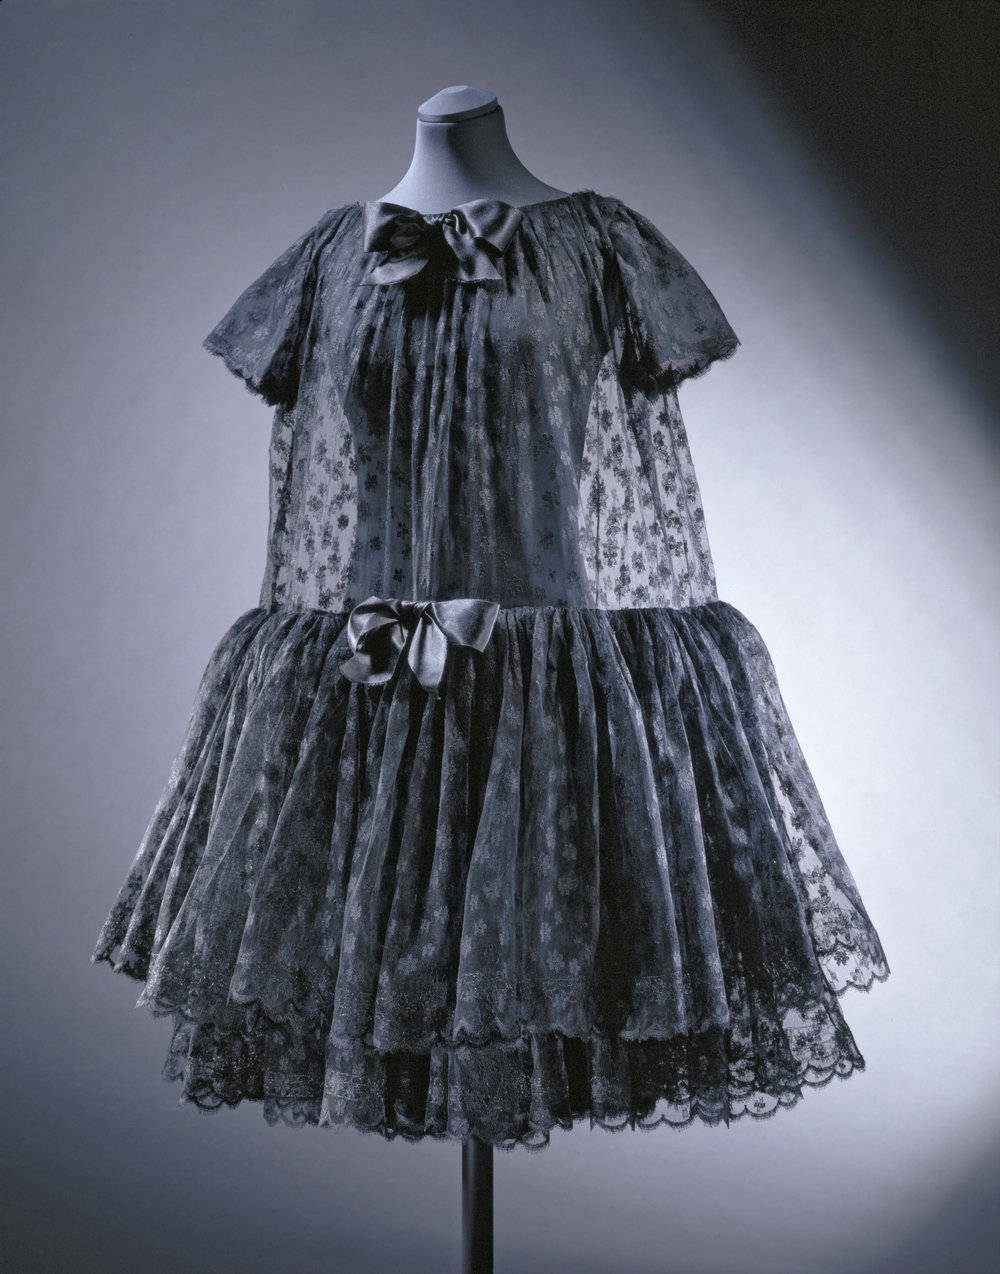 Robe Baby doll_Baleniaga photo.jpg